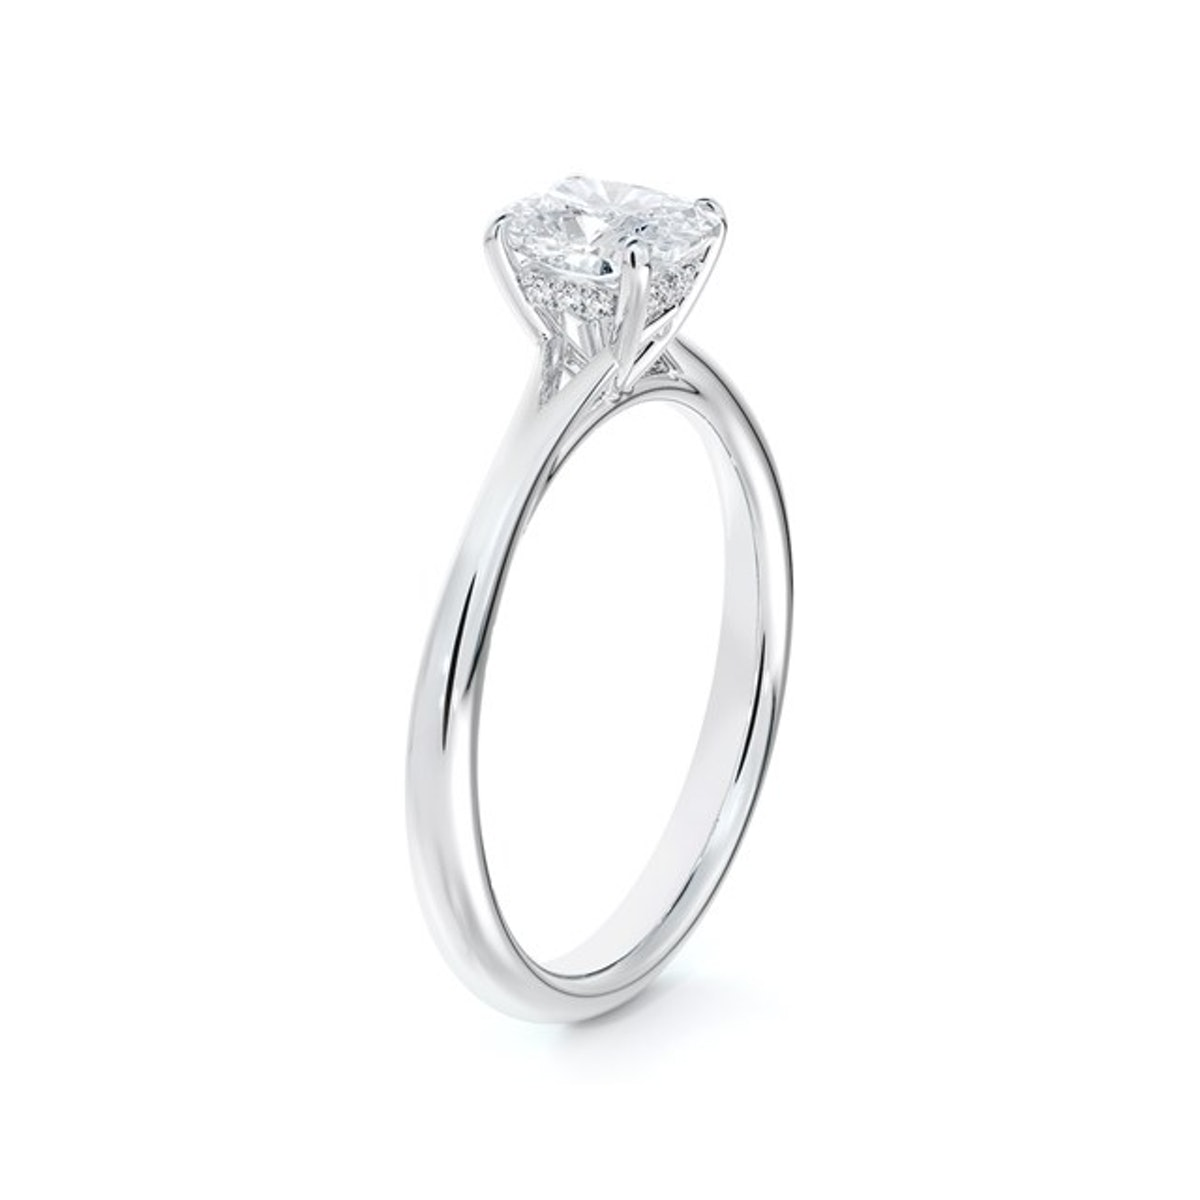 Forevermark Icon setting cushion engagement ring with diamond basket from De Beers Forevermark.